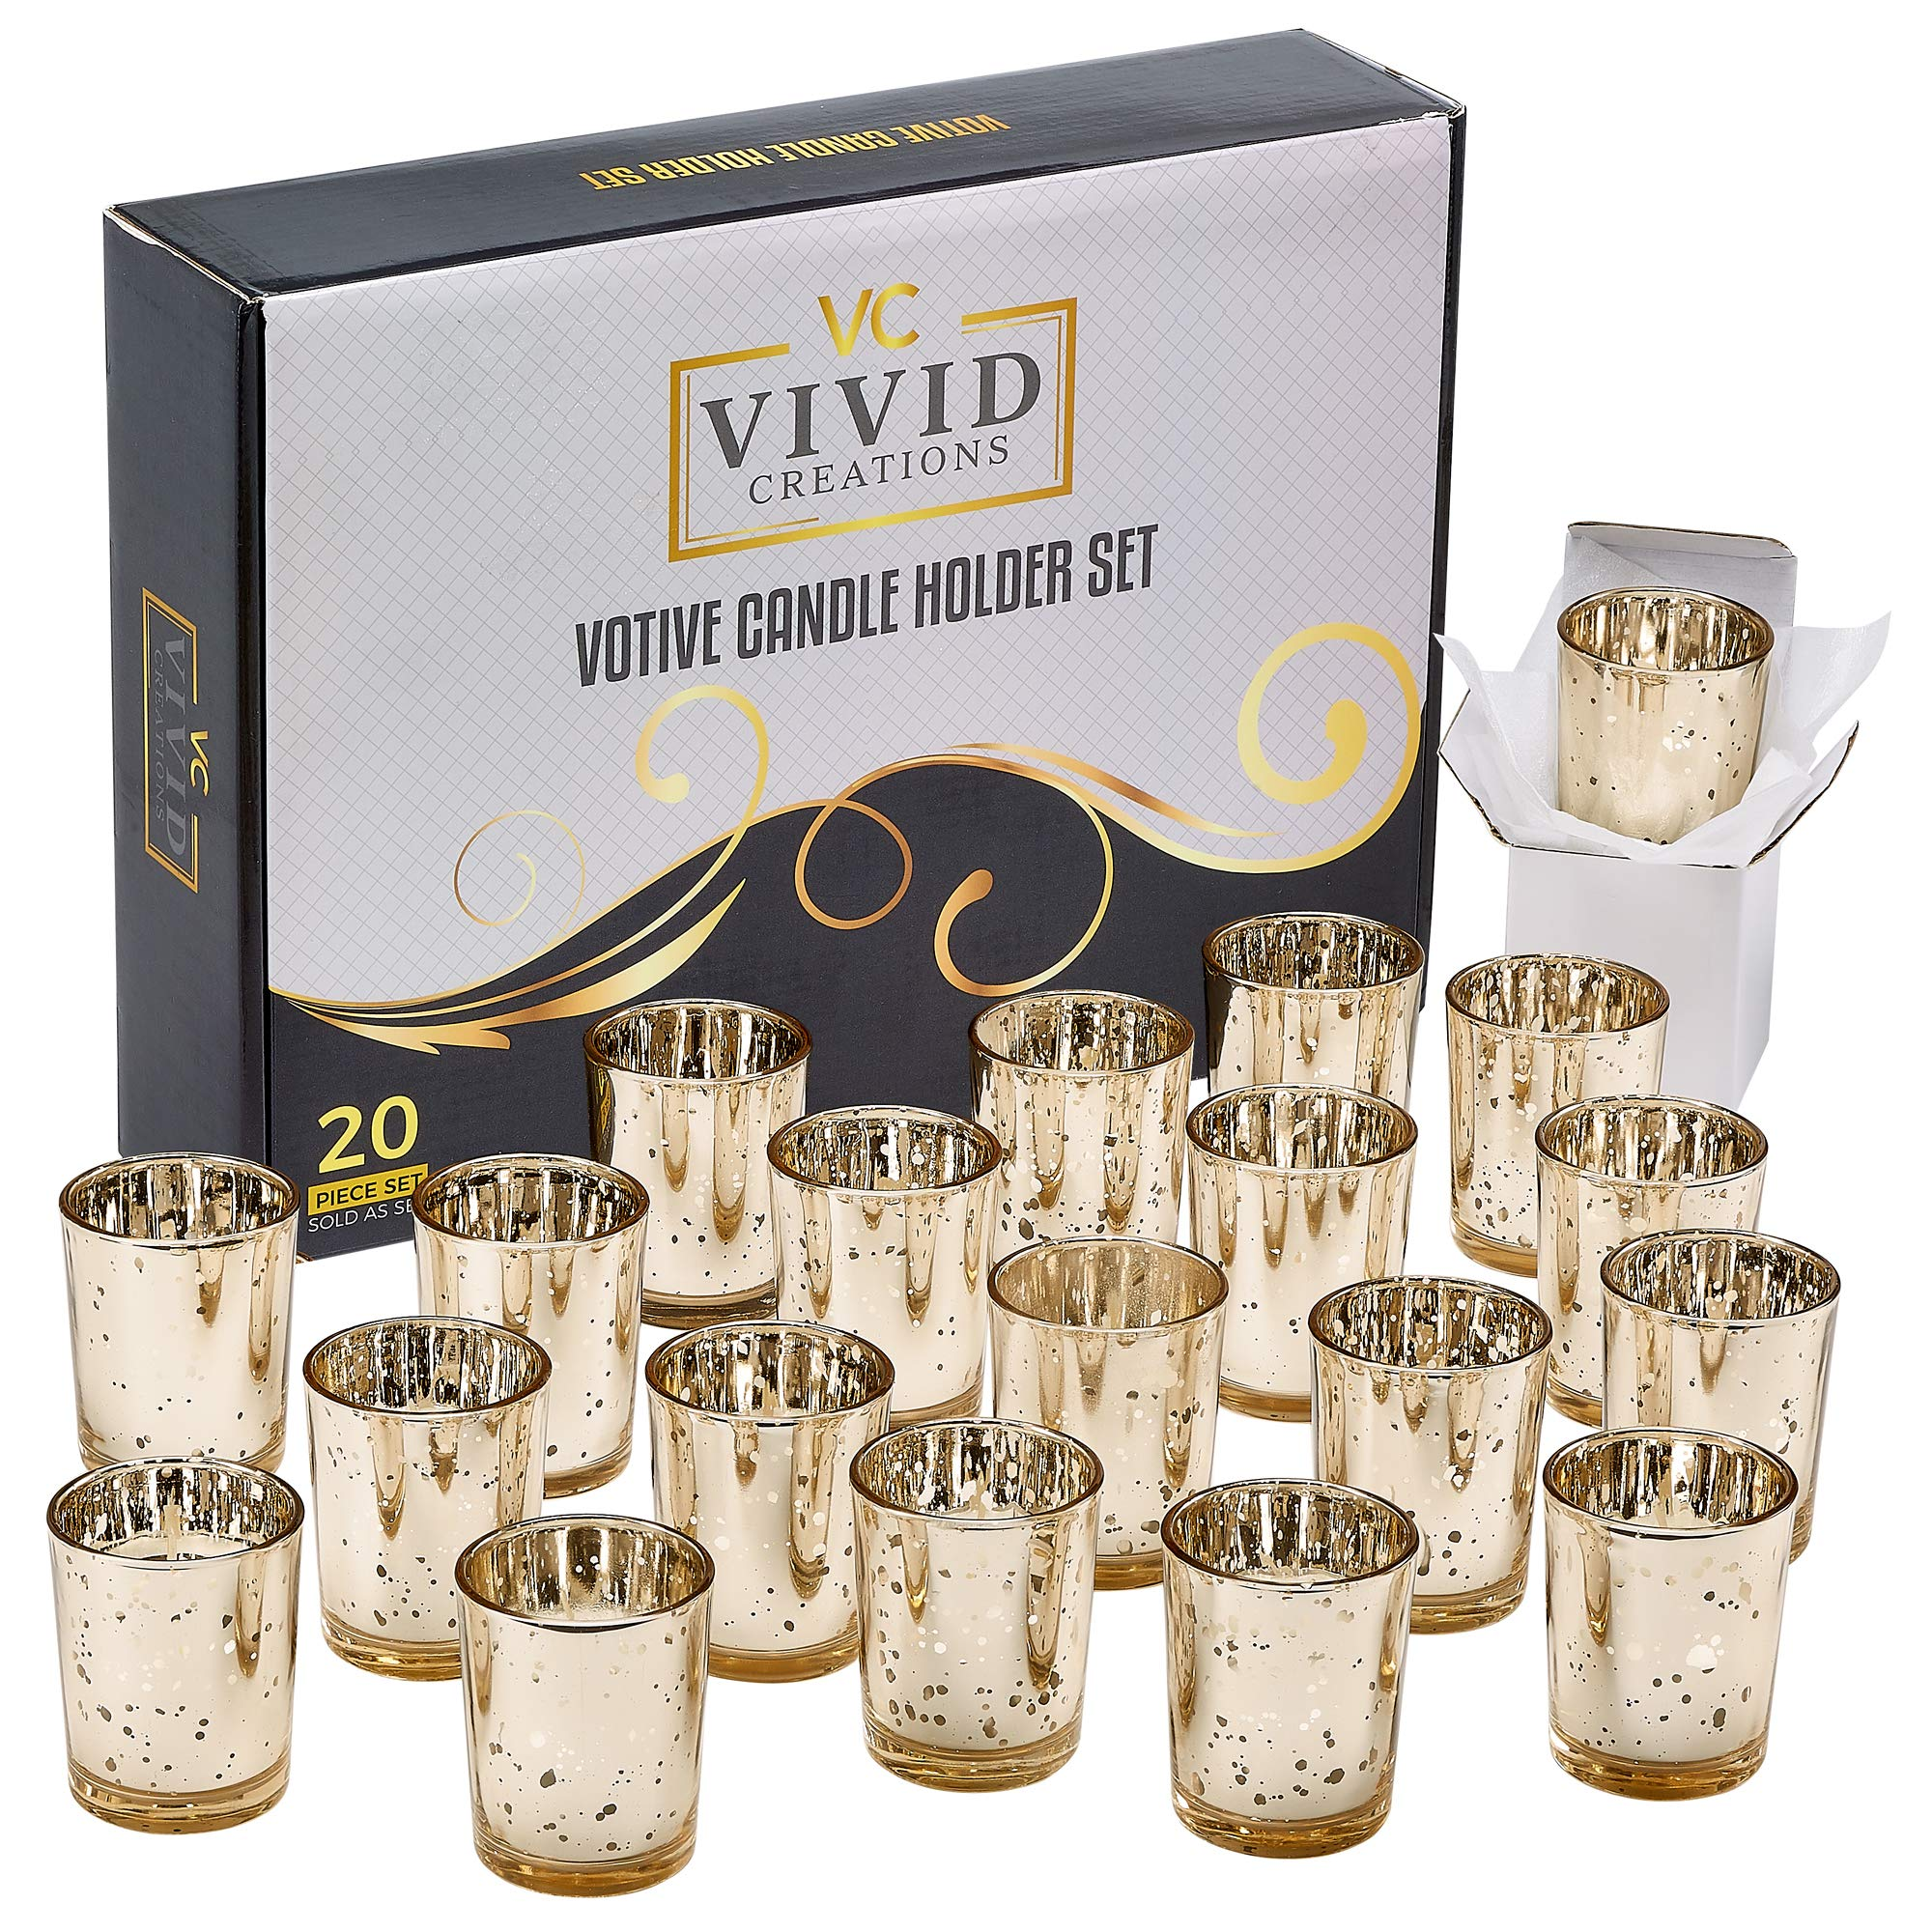 Vivid Creations Gold Votive Candle Holders Bulk (2.75'' H) - Set of 20 Mercury Speckled Glass Votive Tealight Candle Holder for Weddings, Parties and Home Decor.